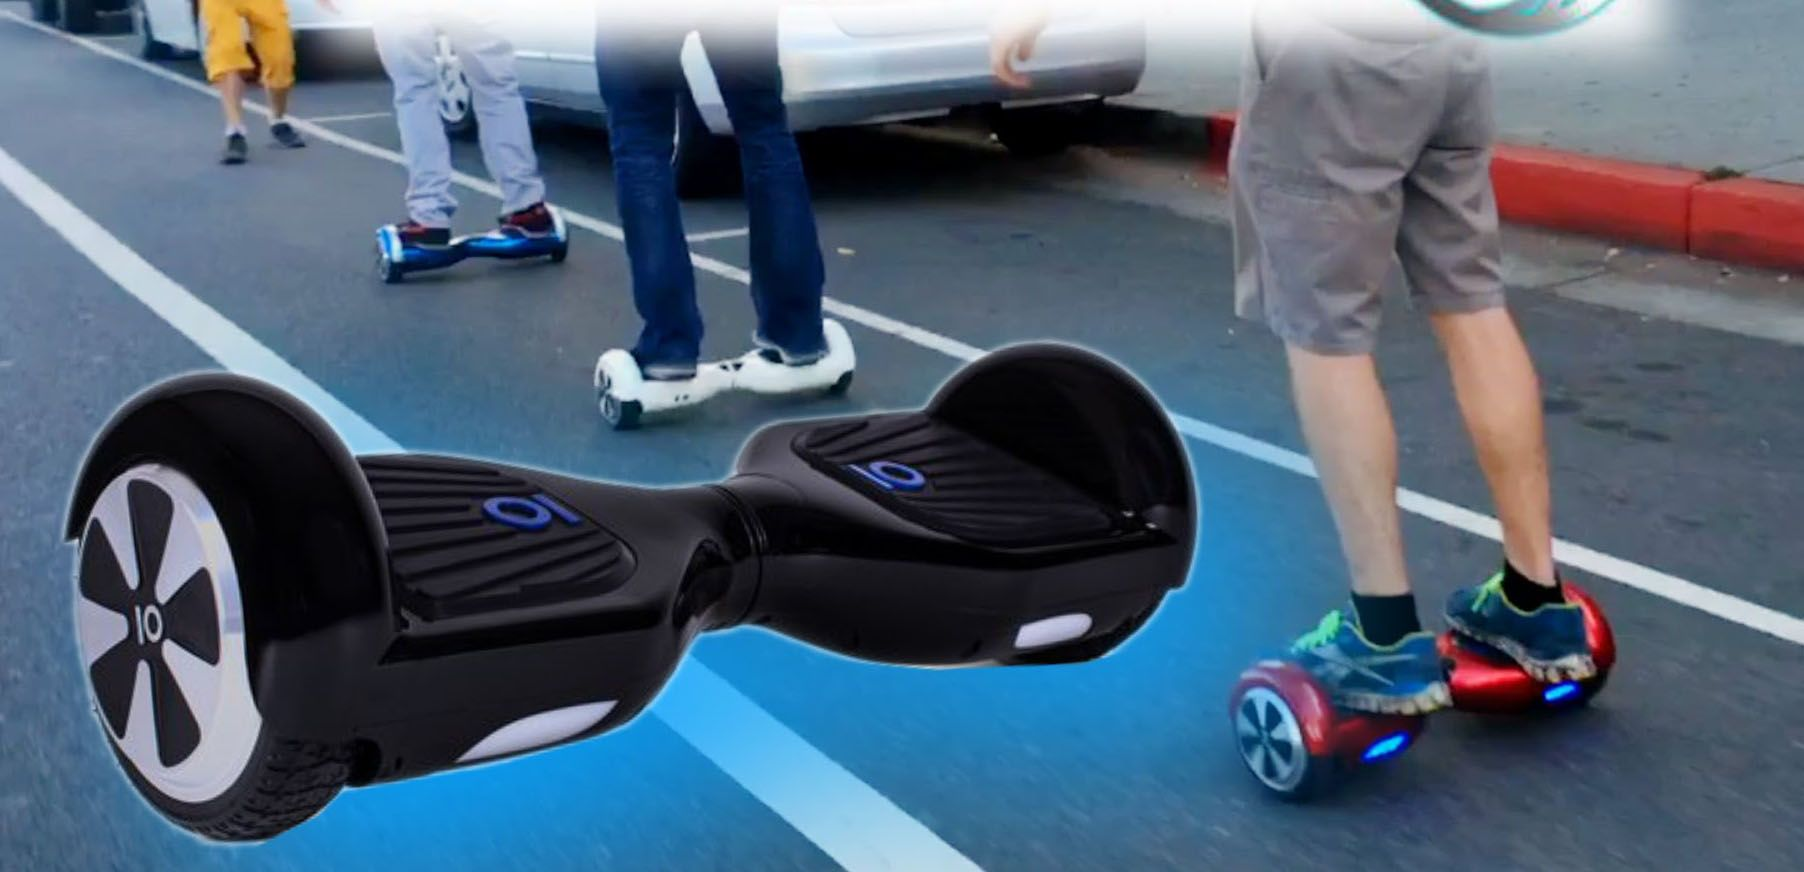 Pin By Mary Meeker On Scootersa Hoverboard Kids Hoverboard Hoverboard Scooter